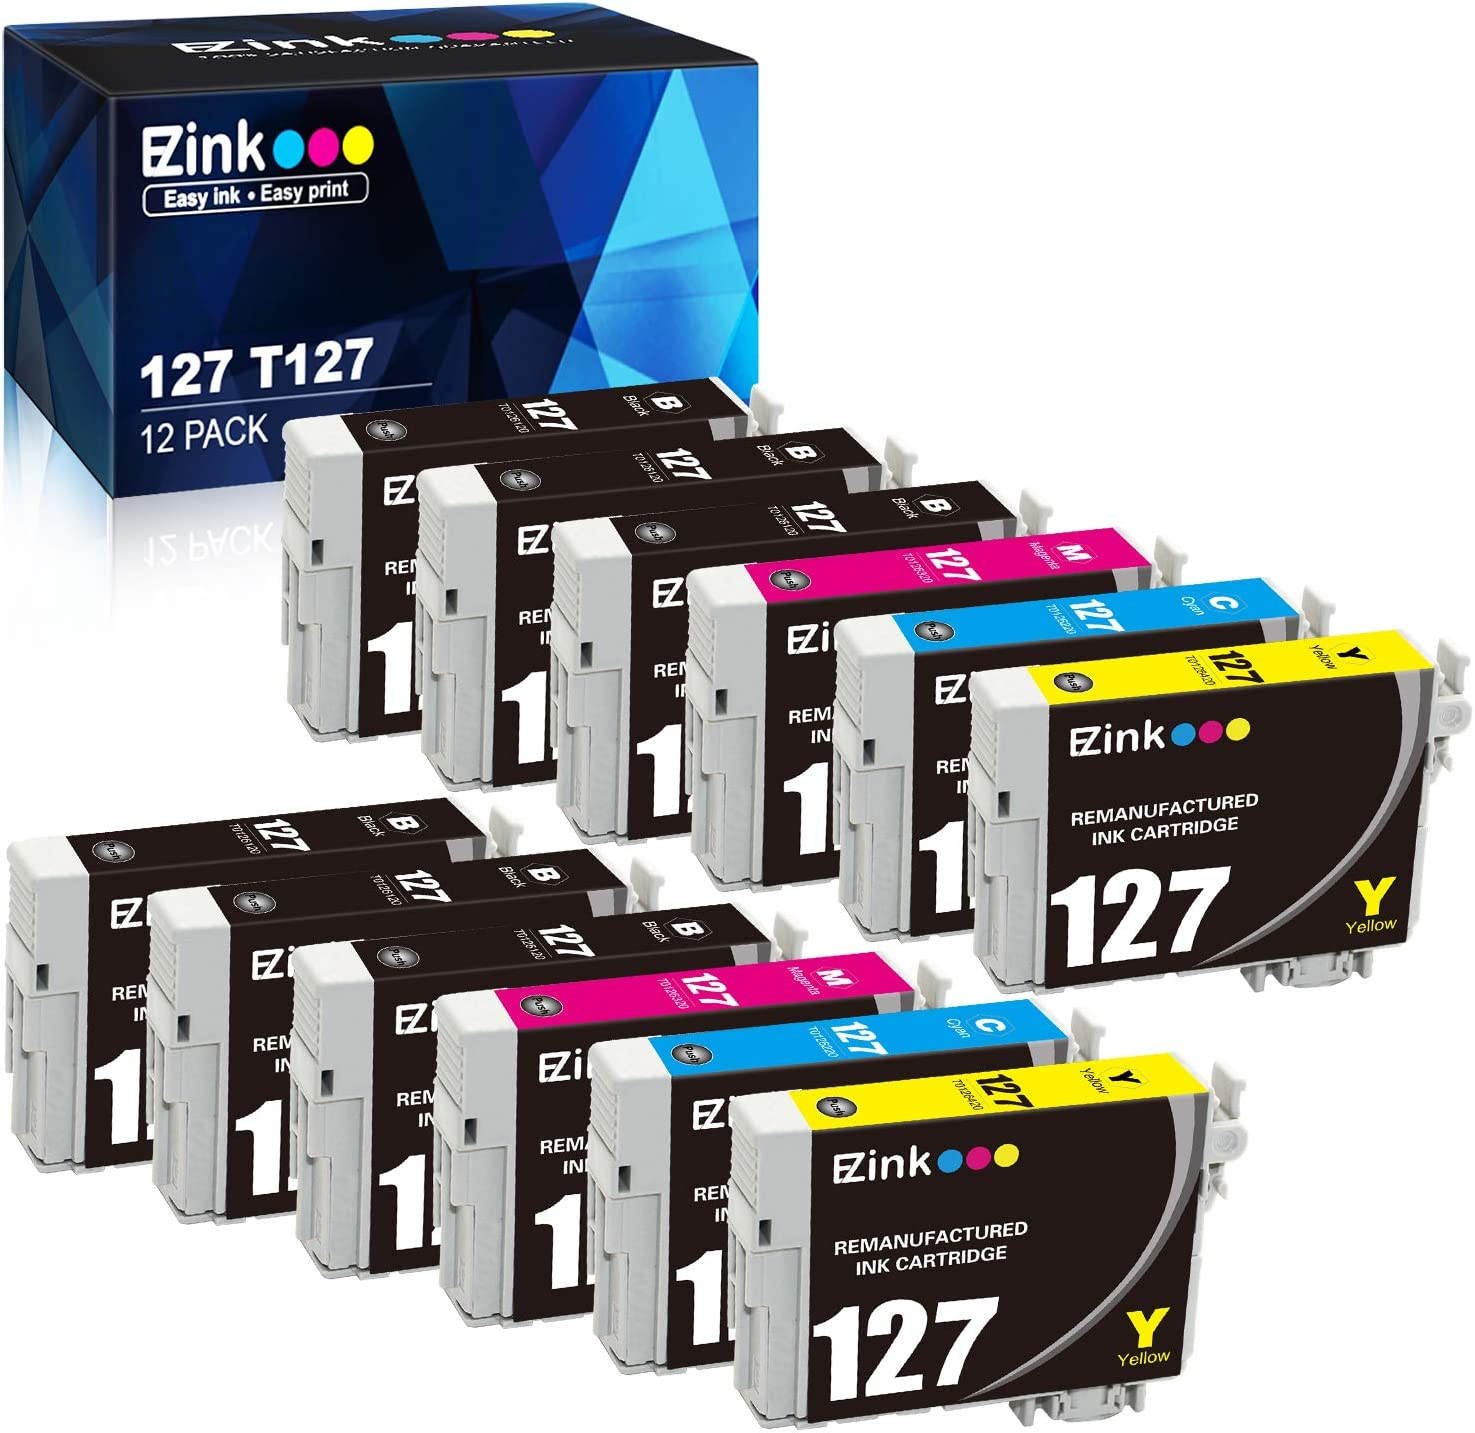 E-Z Ink (TM) Remanufactured Ink Cartridge Replacement for Epson 127 T127 to use with NX530 NX625 WF-3520 WF-3530 WF-3540 WF-7010 WF-7510 WF-7520 545 645 (6 Black, 2 Cyan, 2 Magenta, 2 Yellow) 12Pack